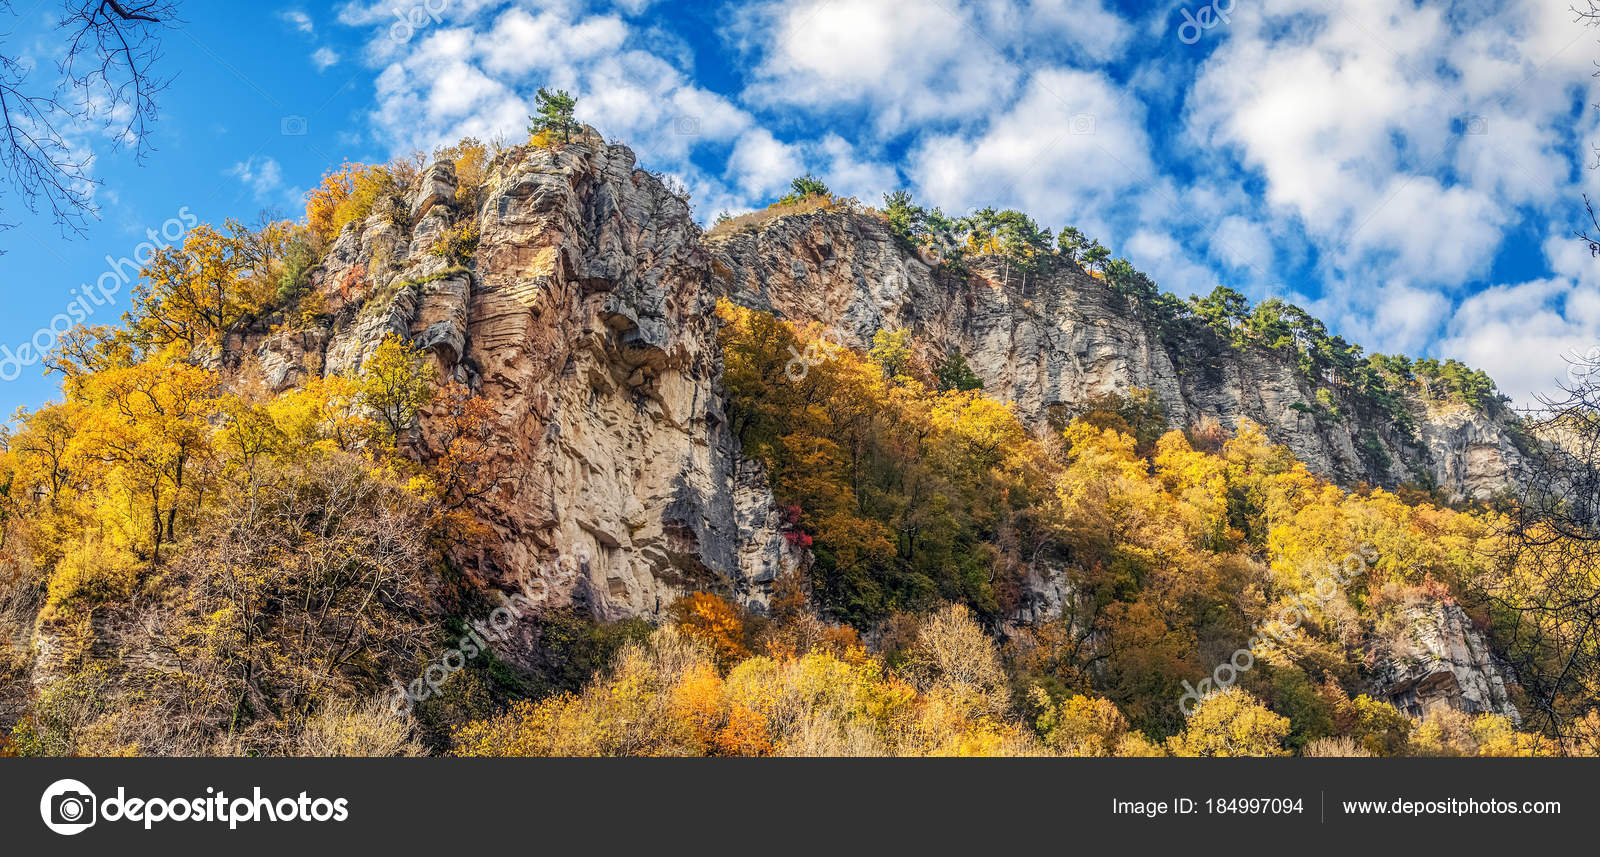 Eagle Rocks in Sochi: description, attractions, interesting facts and reviews 16